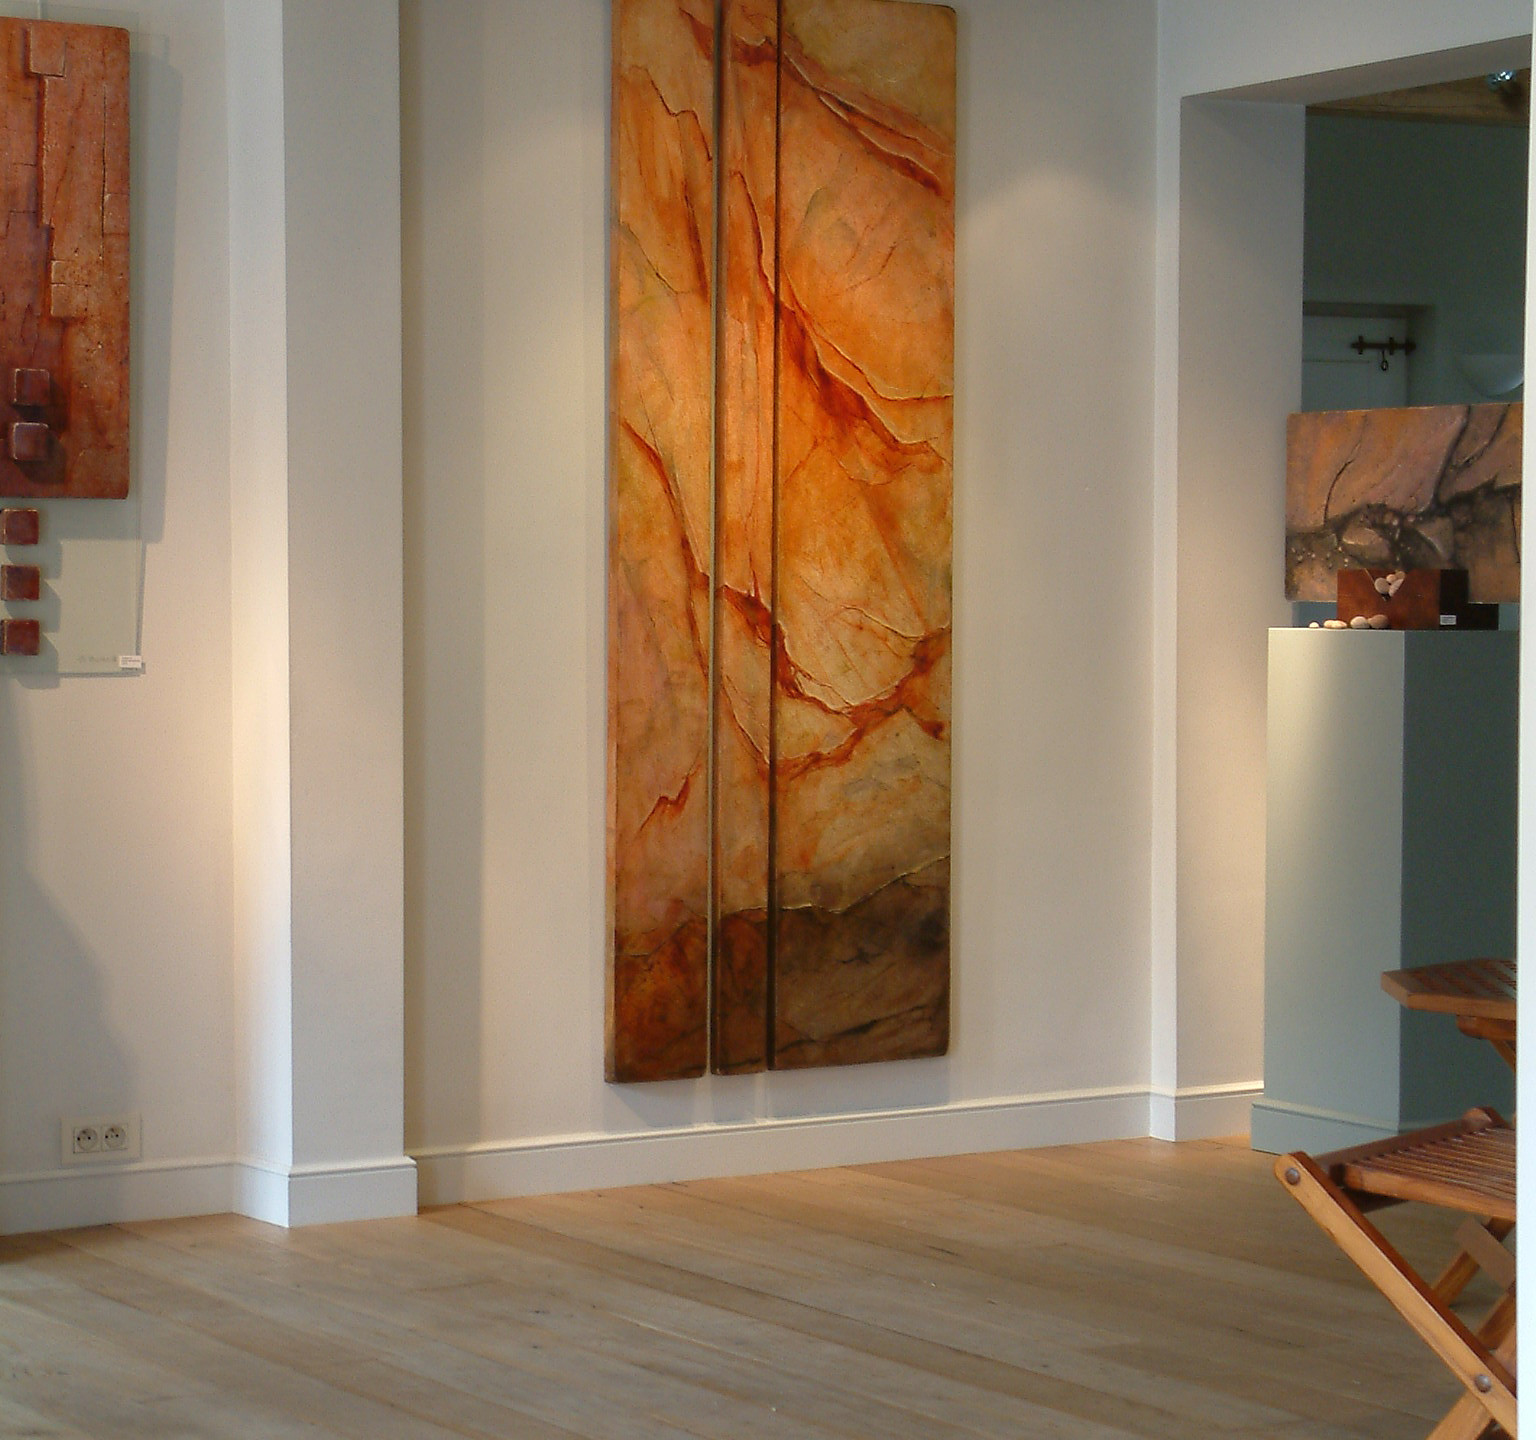 Fiery fraction 20-10-40x200cm (oilpainting -canvas on panels)